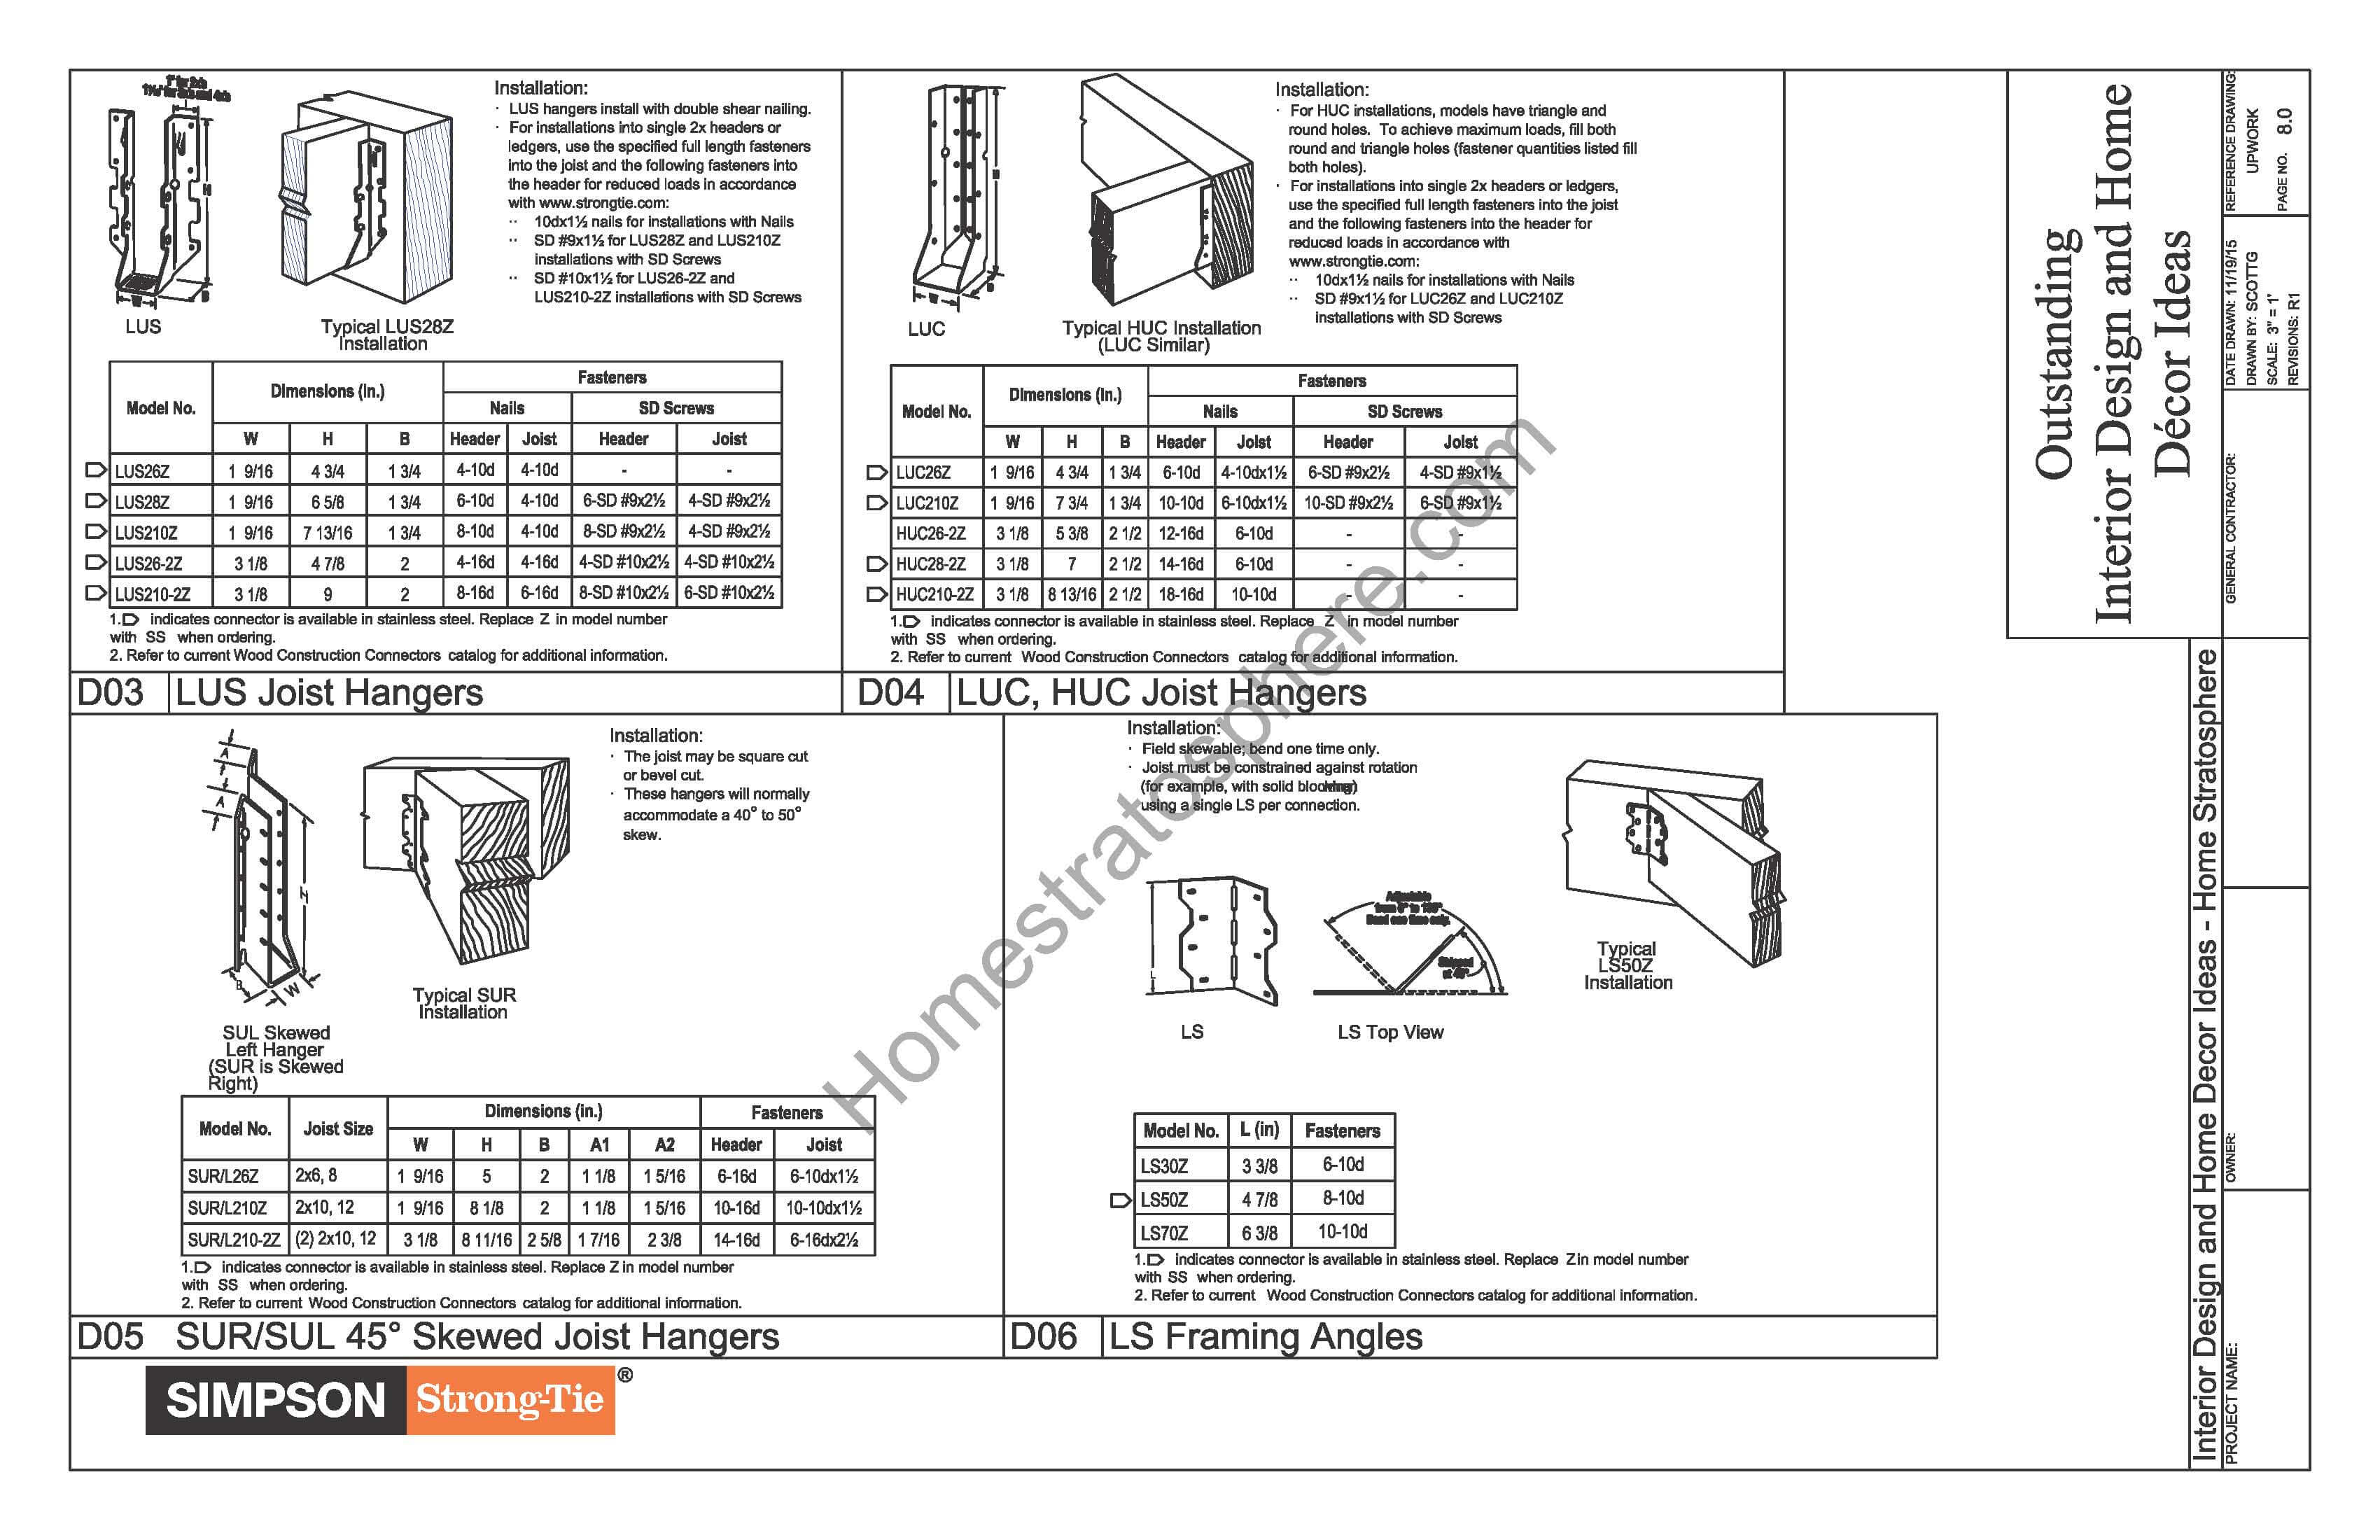 schematic drawings software